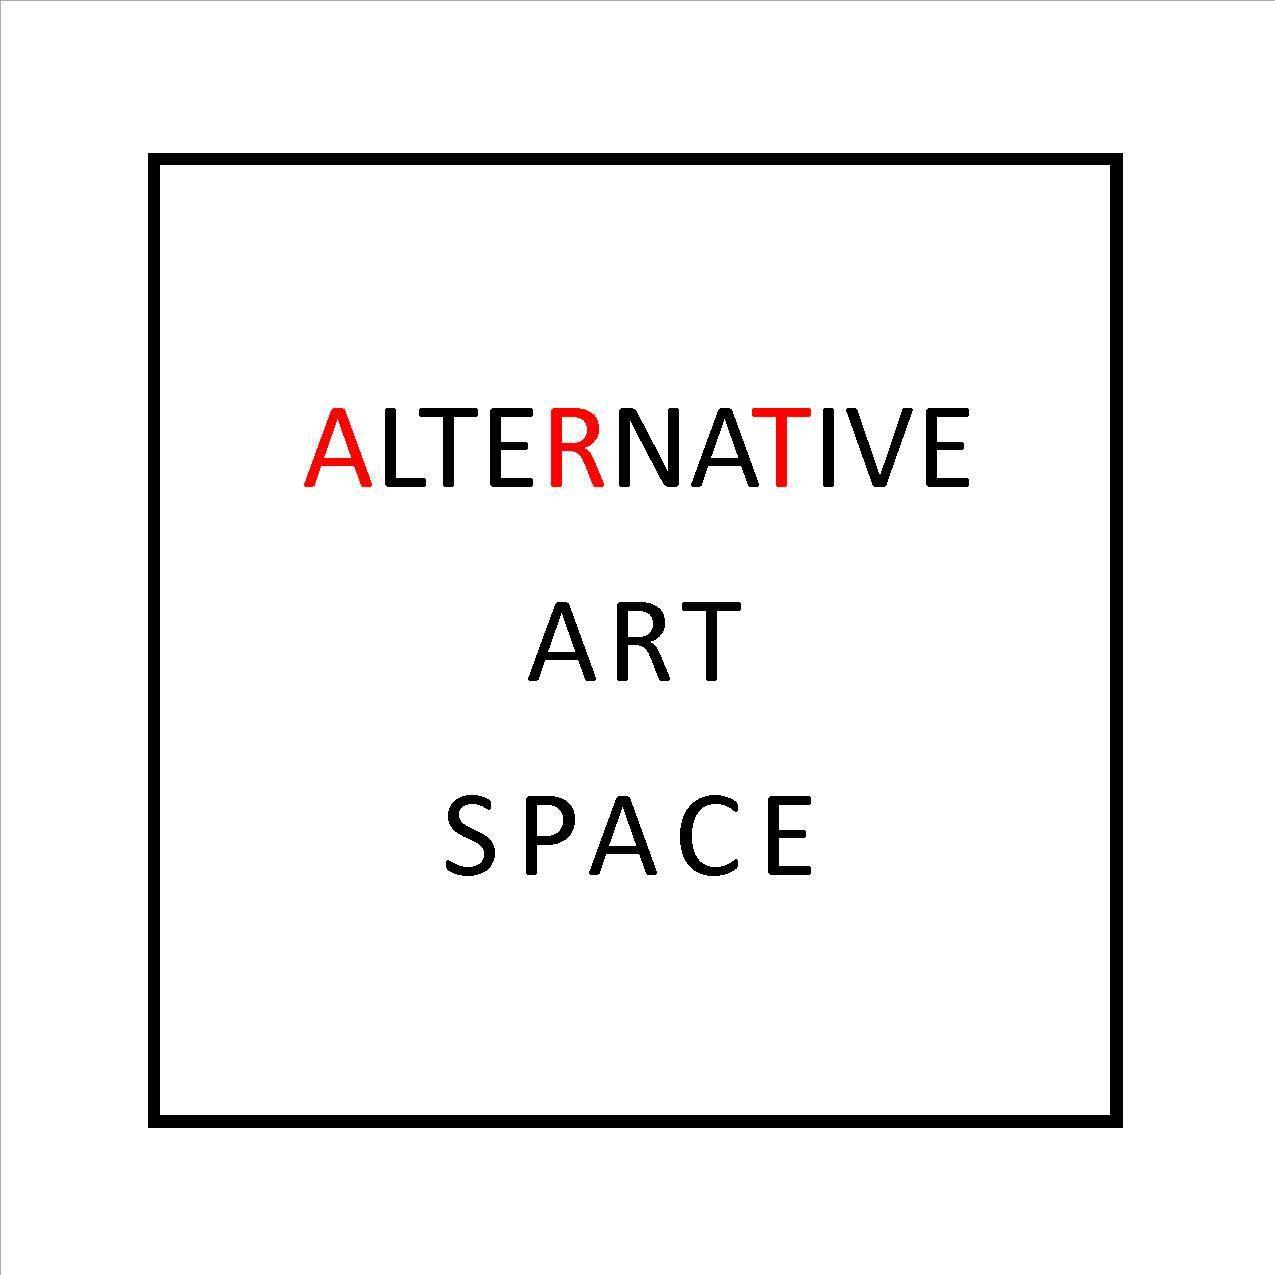 Alternative Art Space